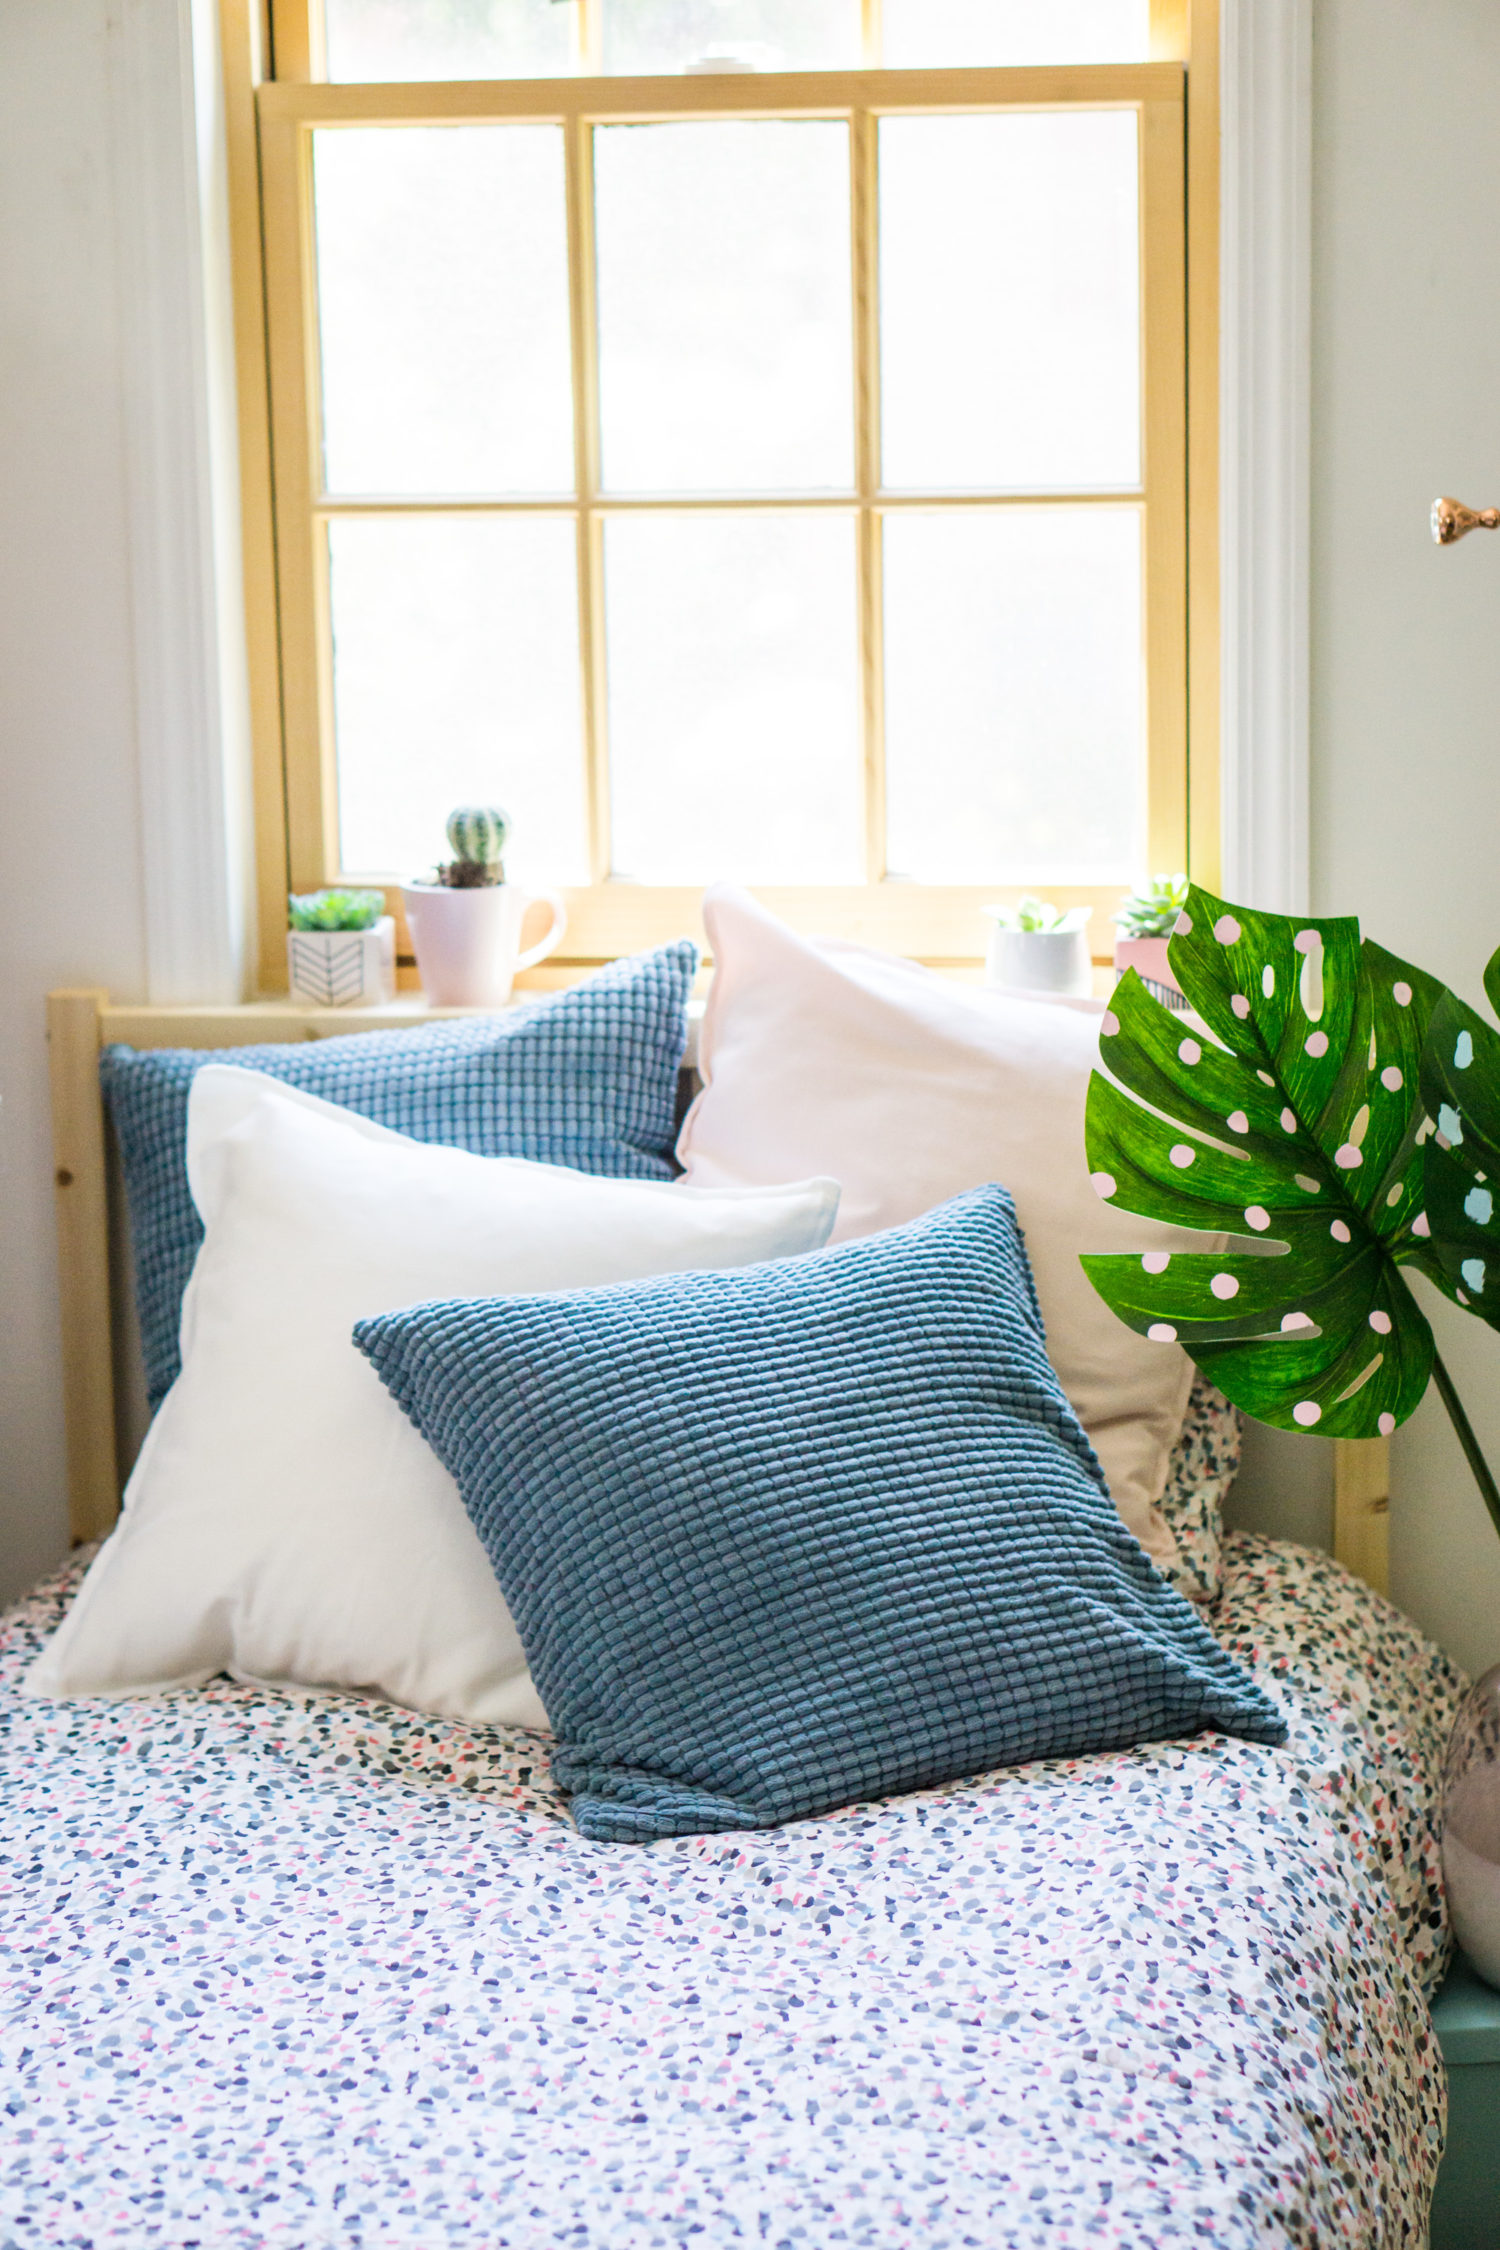 IKEA dorm decor - how to decorate a bed